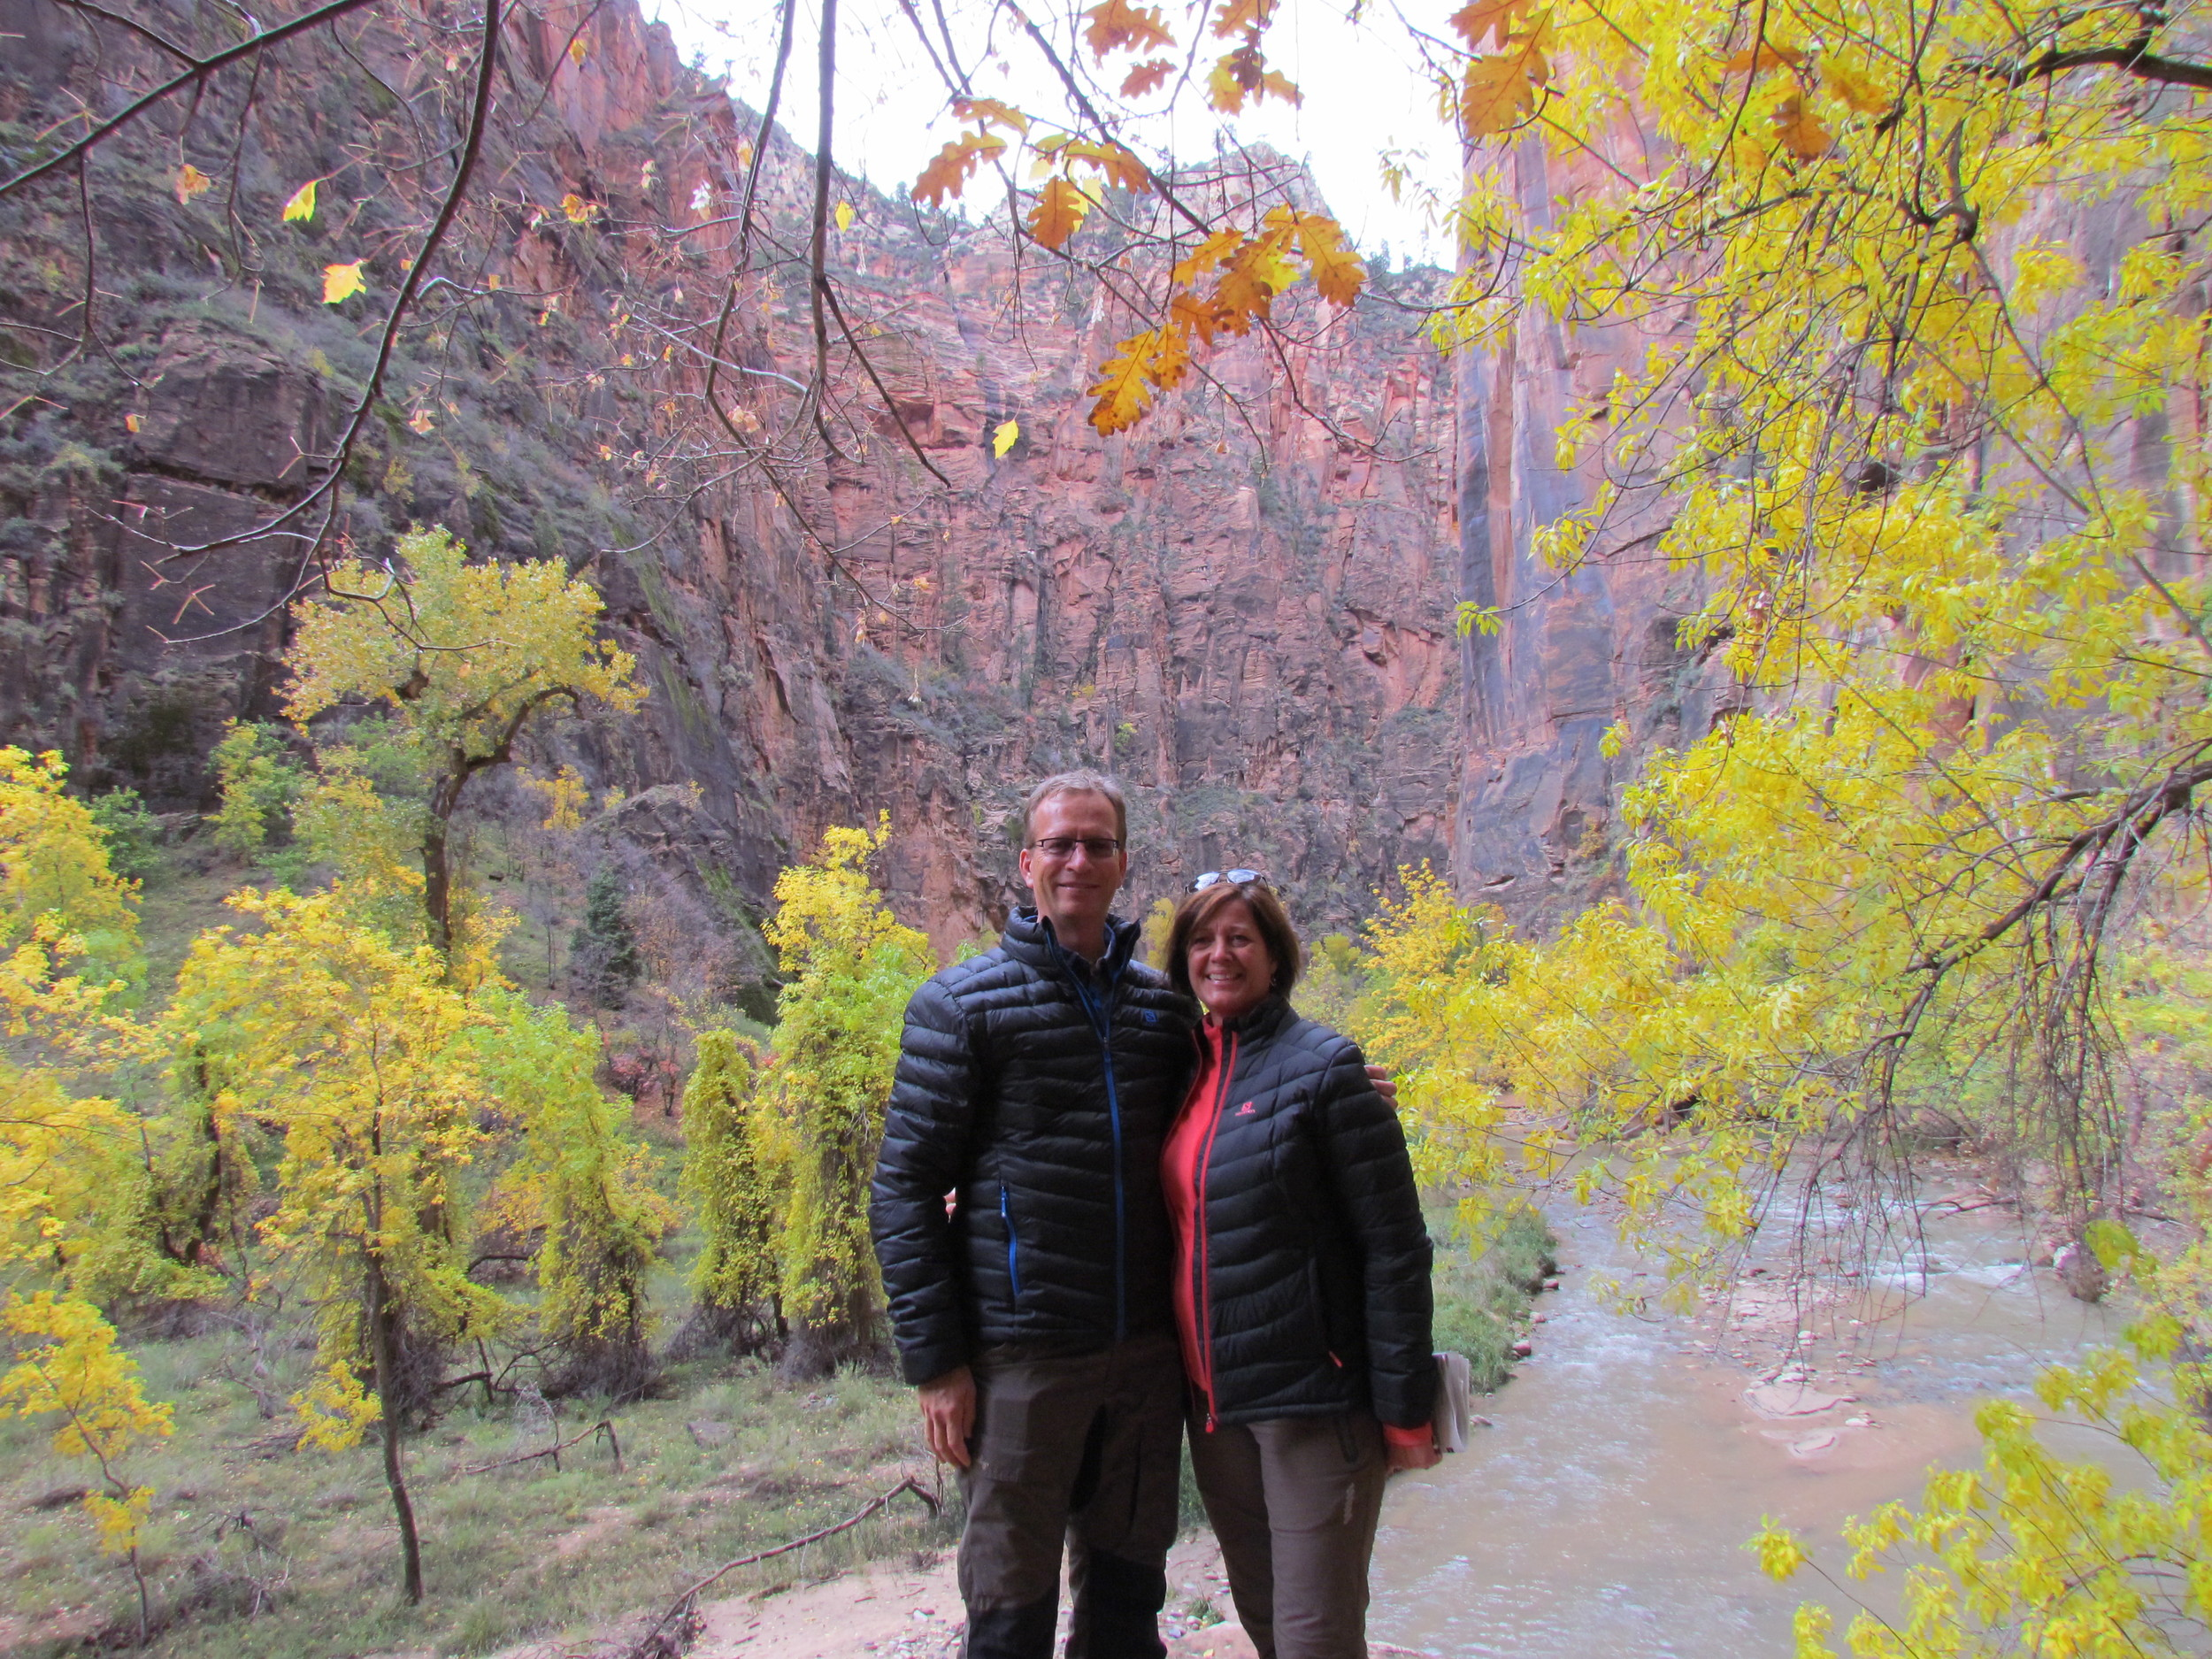 Dora went exploring with part of the group - here Carl and Lena are in one of the canyons